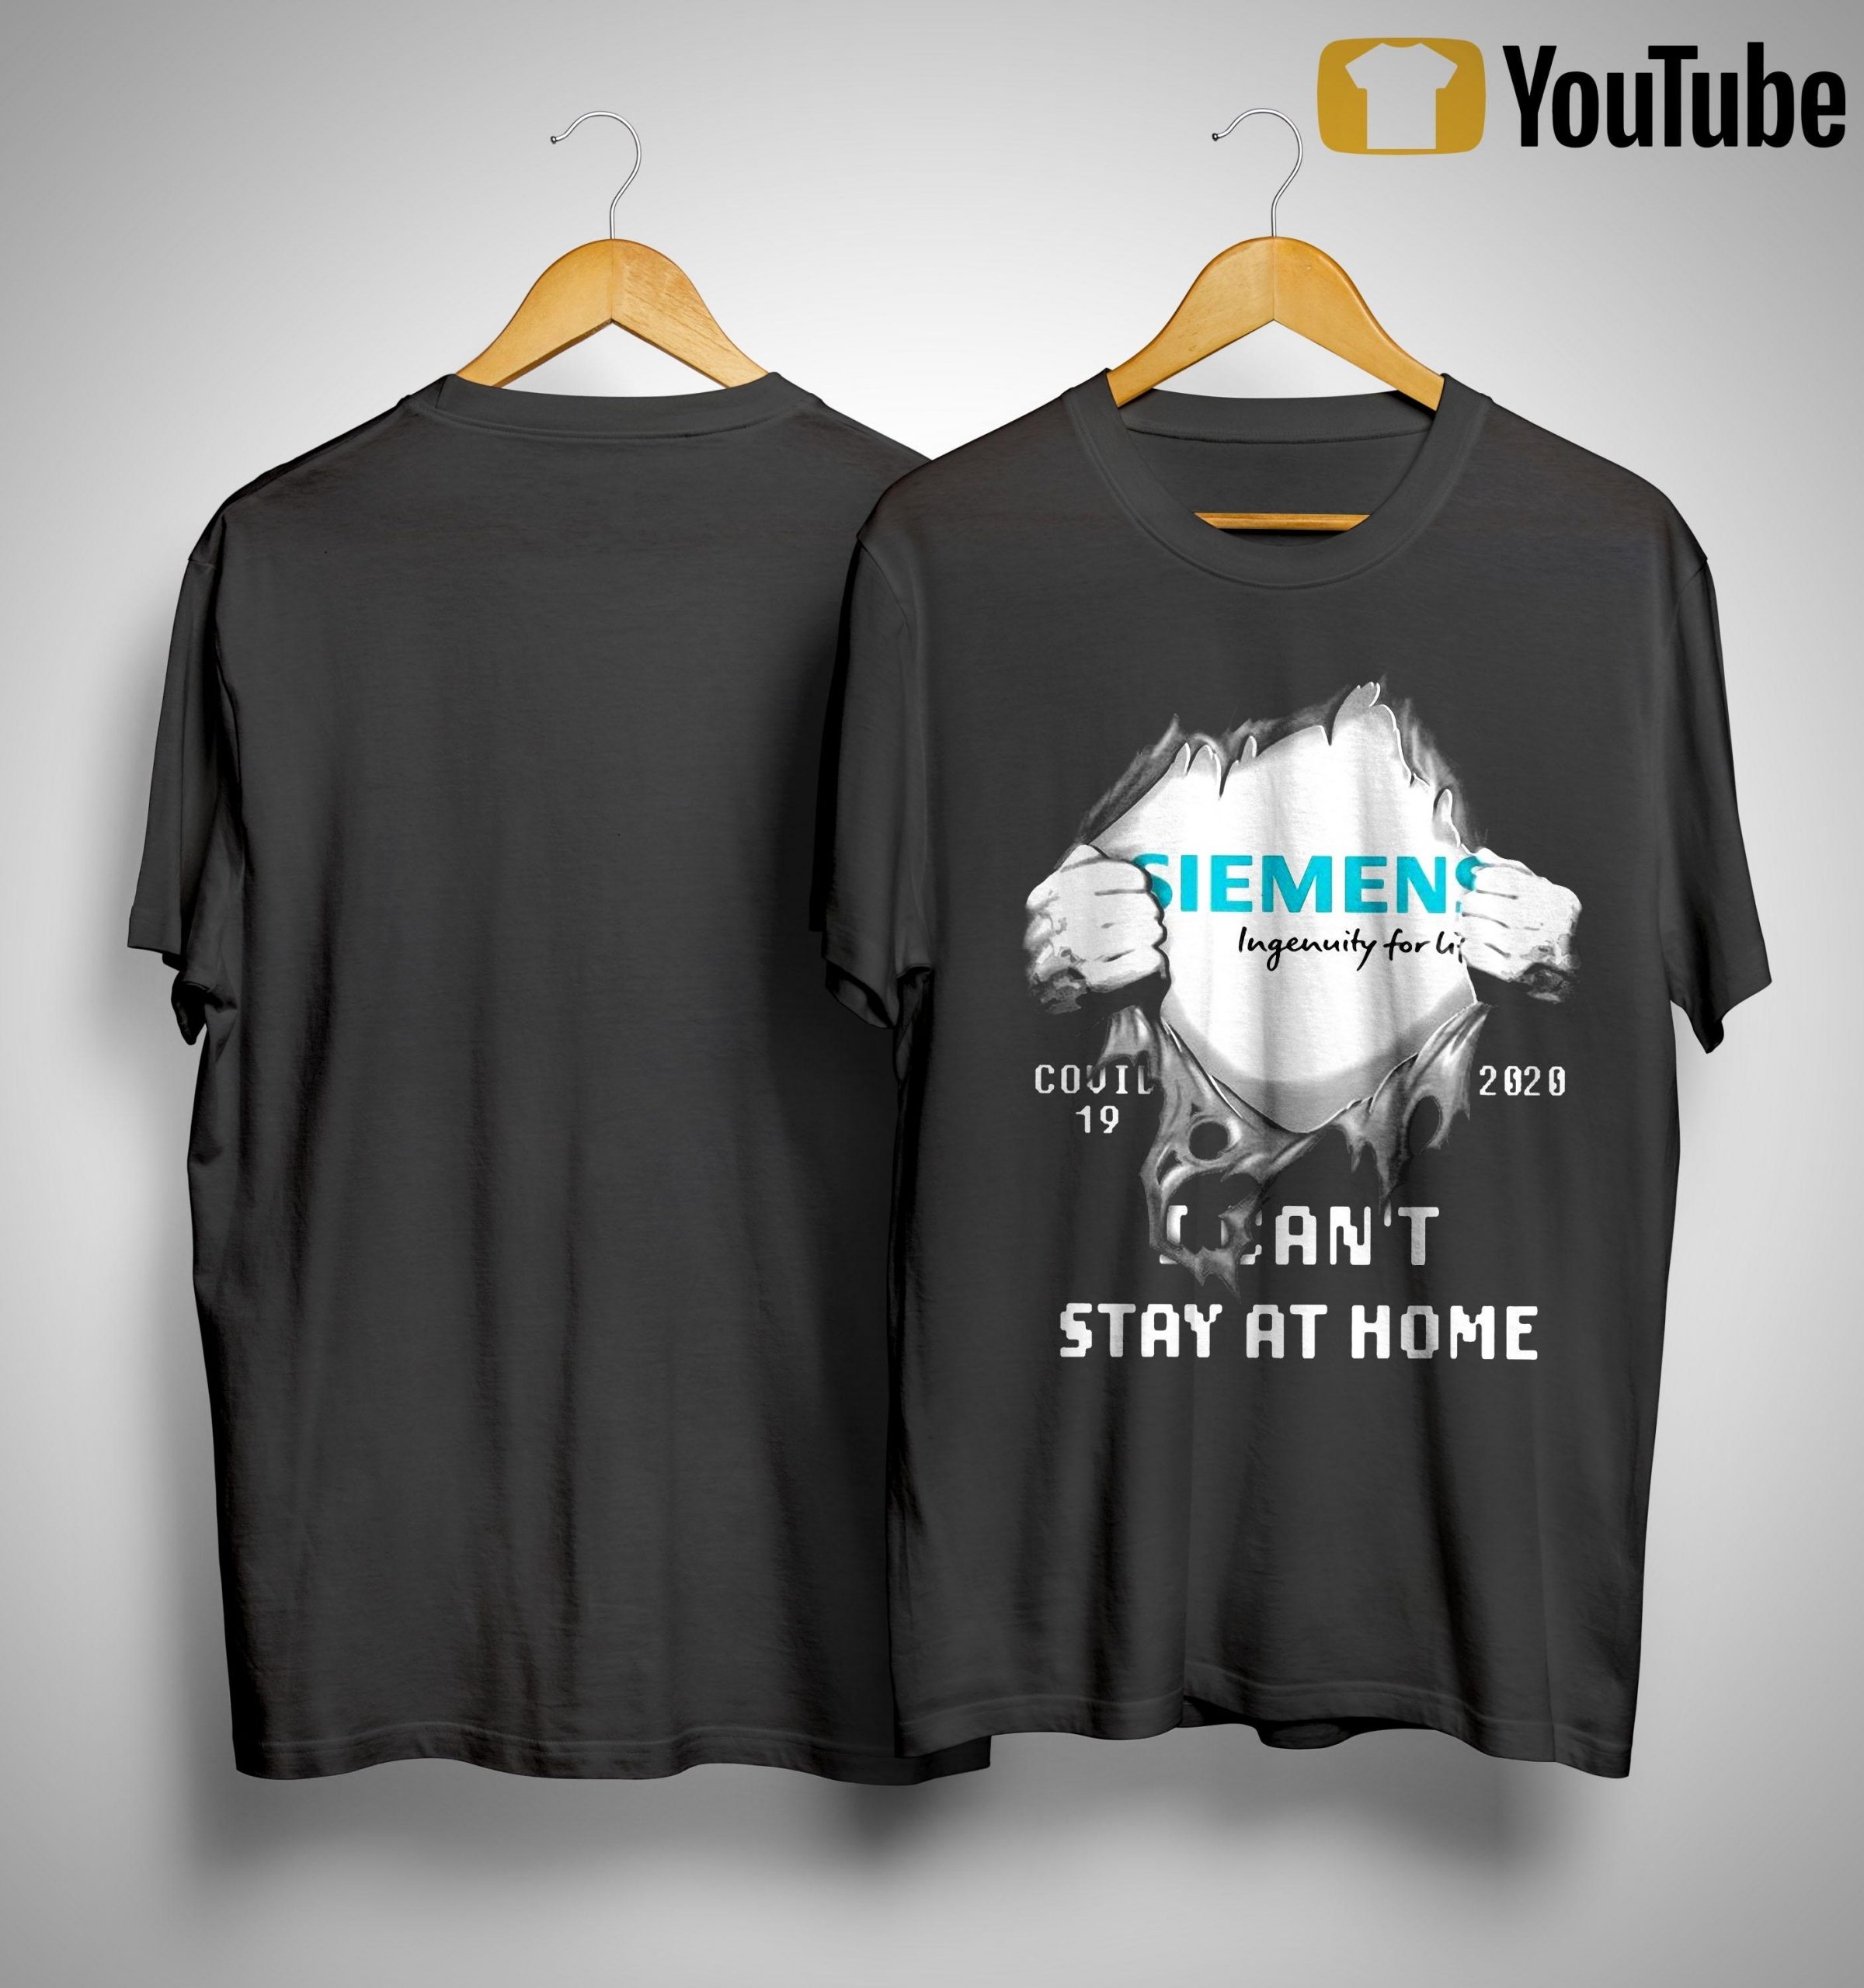 Siemens Ingenuity For Life Covid 19 2020 I Can't Stay At Home Shirt